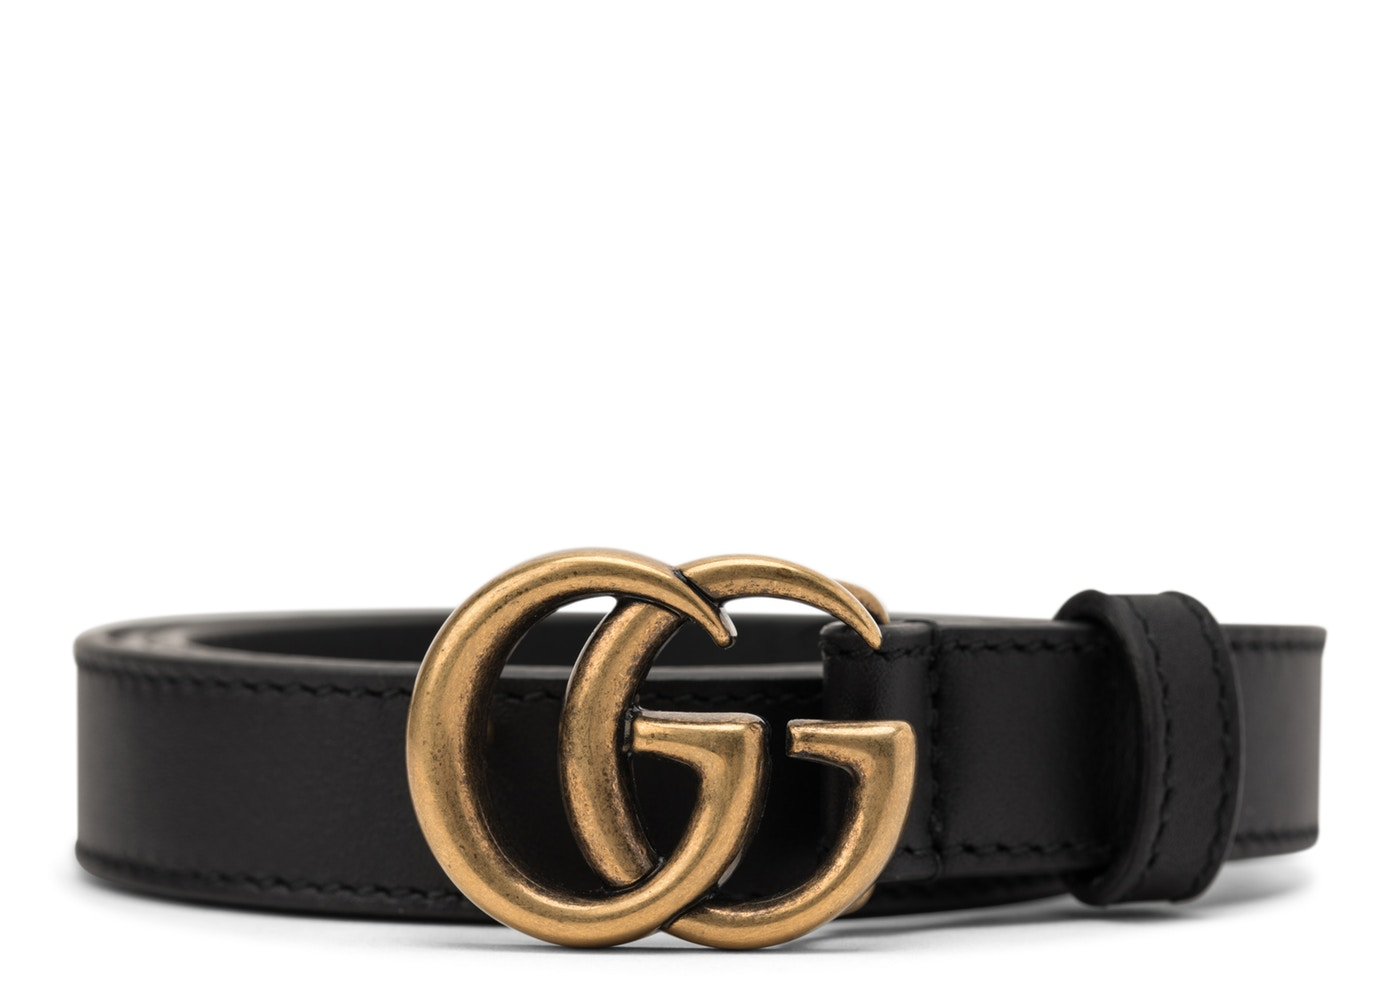 284ad5c9512 Gucci Double G Buckle Leather Belt 1.5 Width 80-32 Black